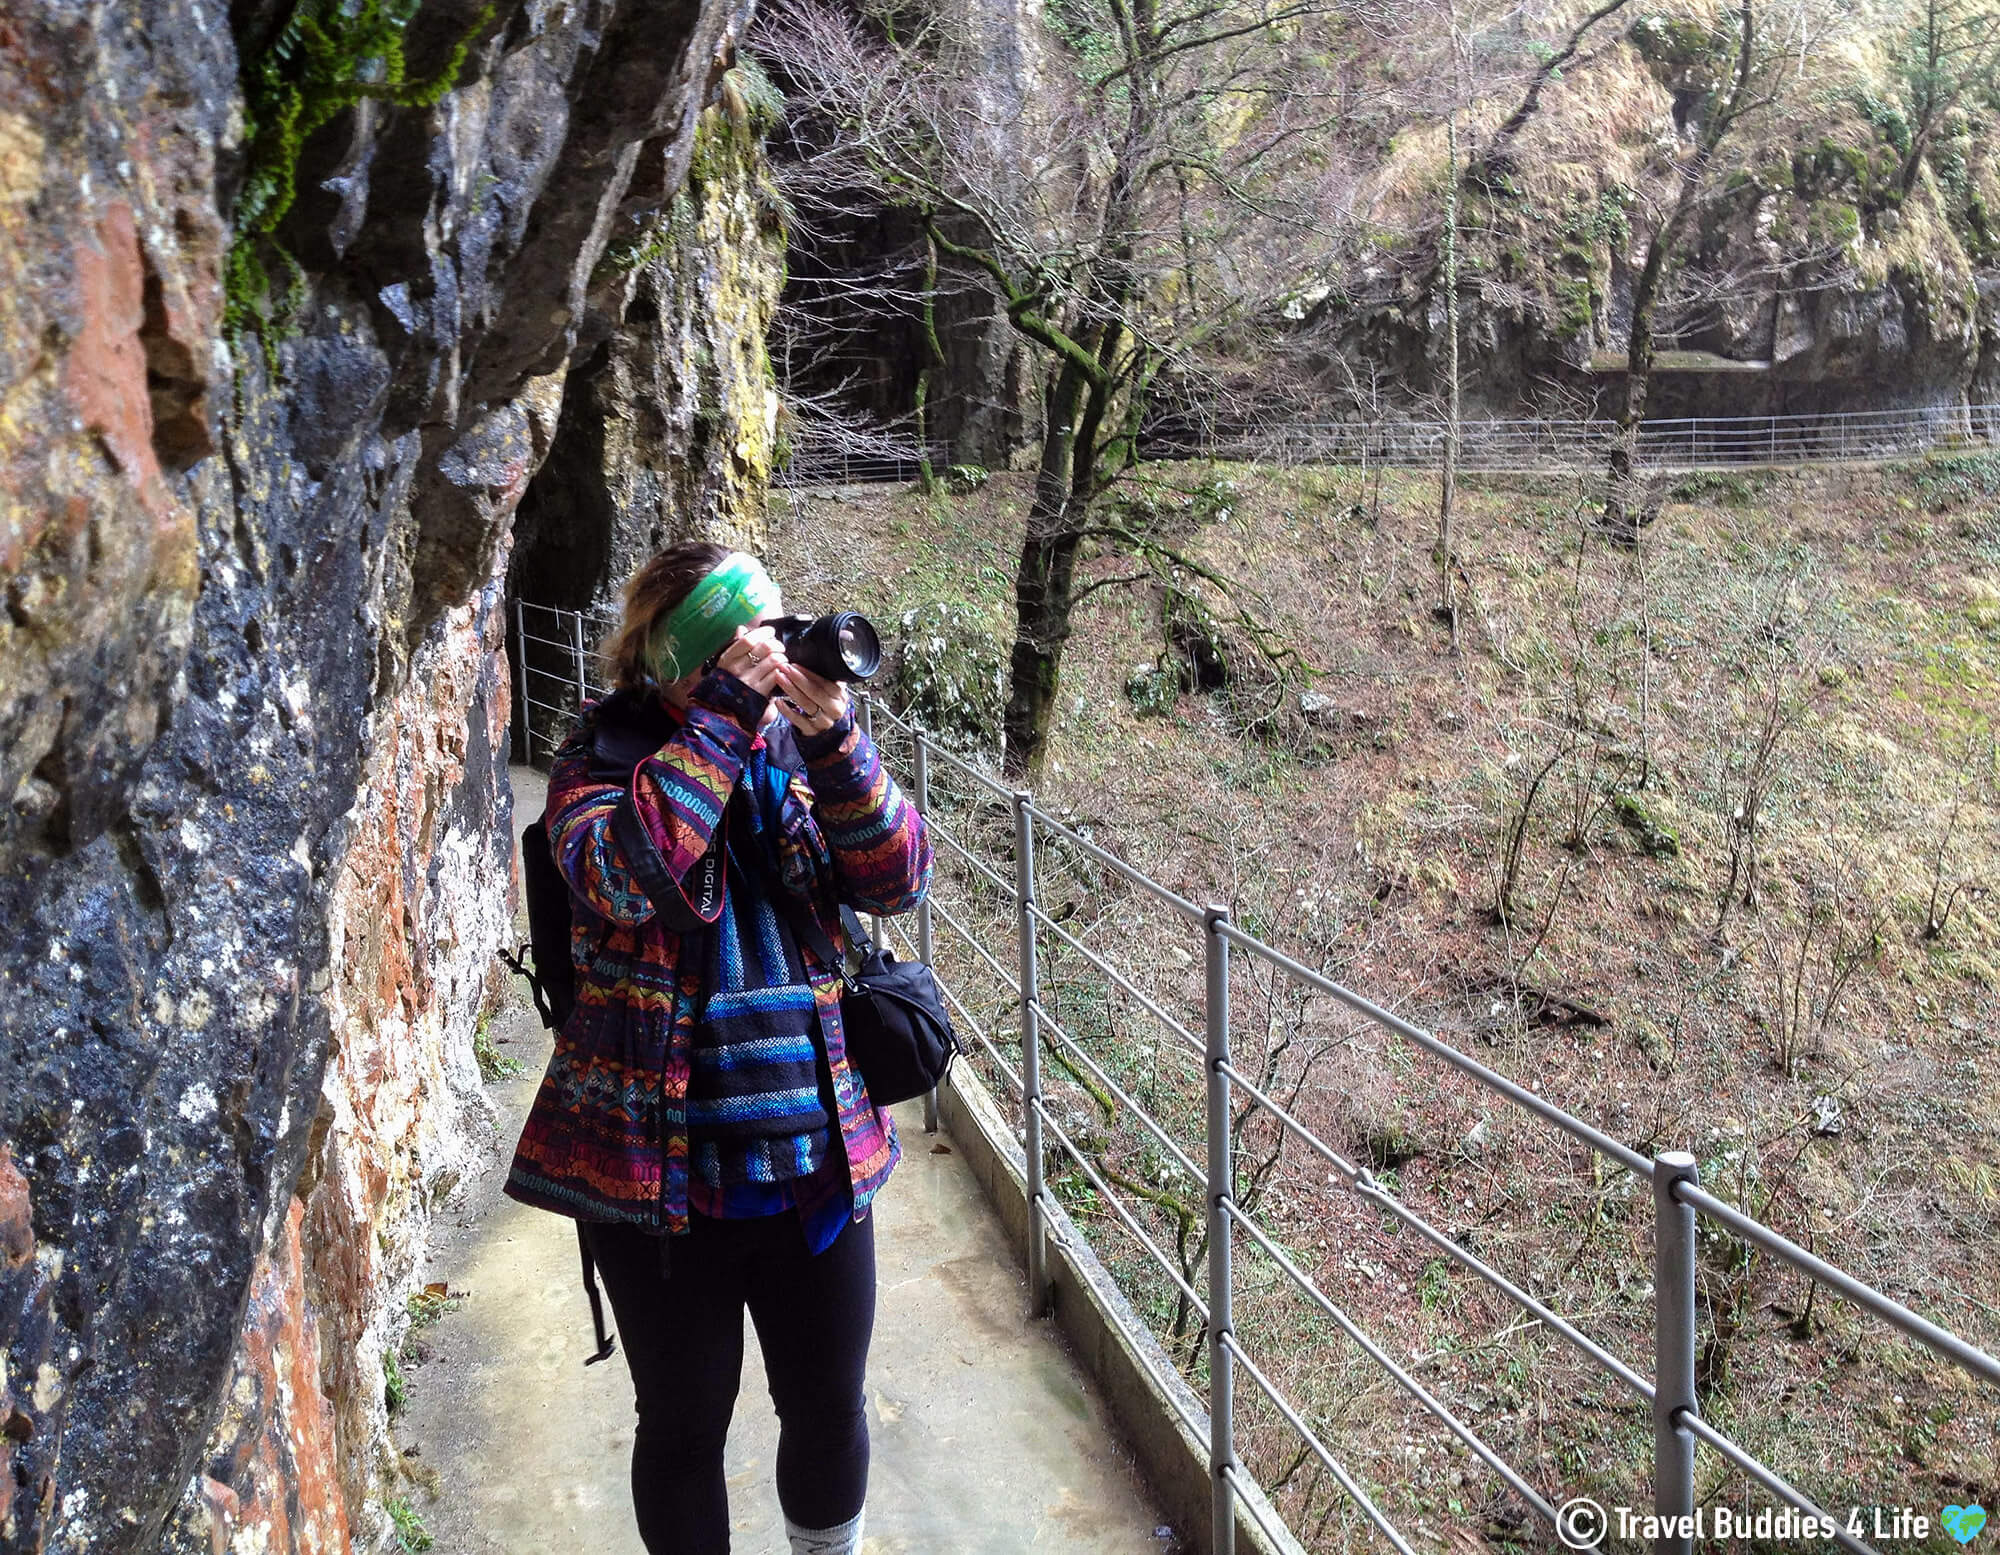 Ali Taking a Picture Outside of the Skocjanske Jame Caves of Slovenia's Karst Region, in Europe's Balkan Countries